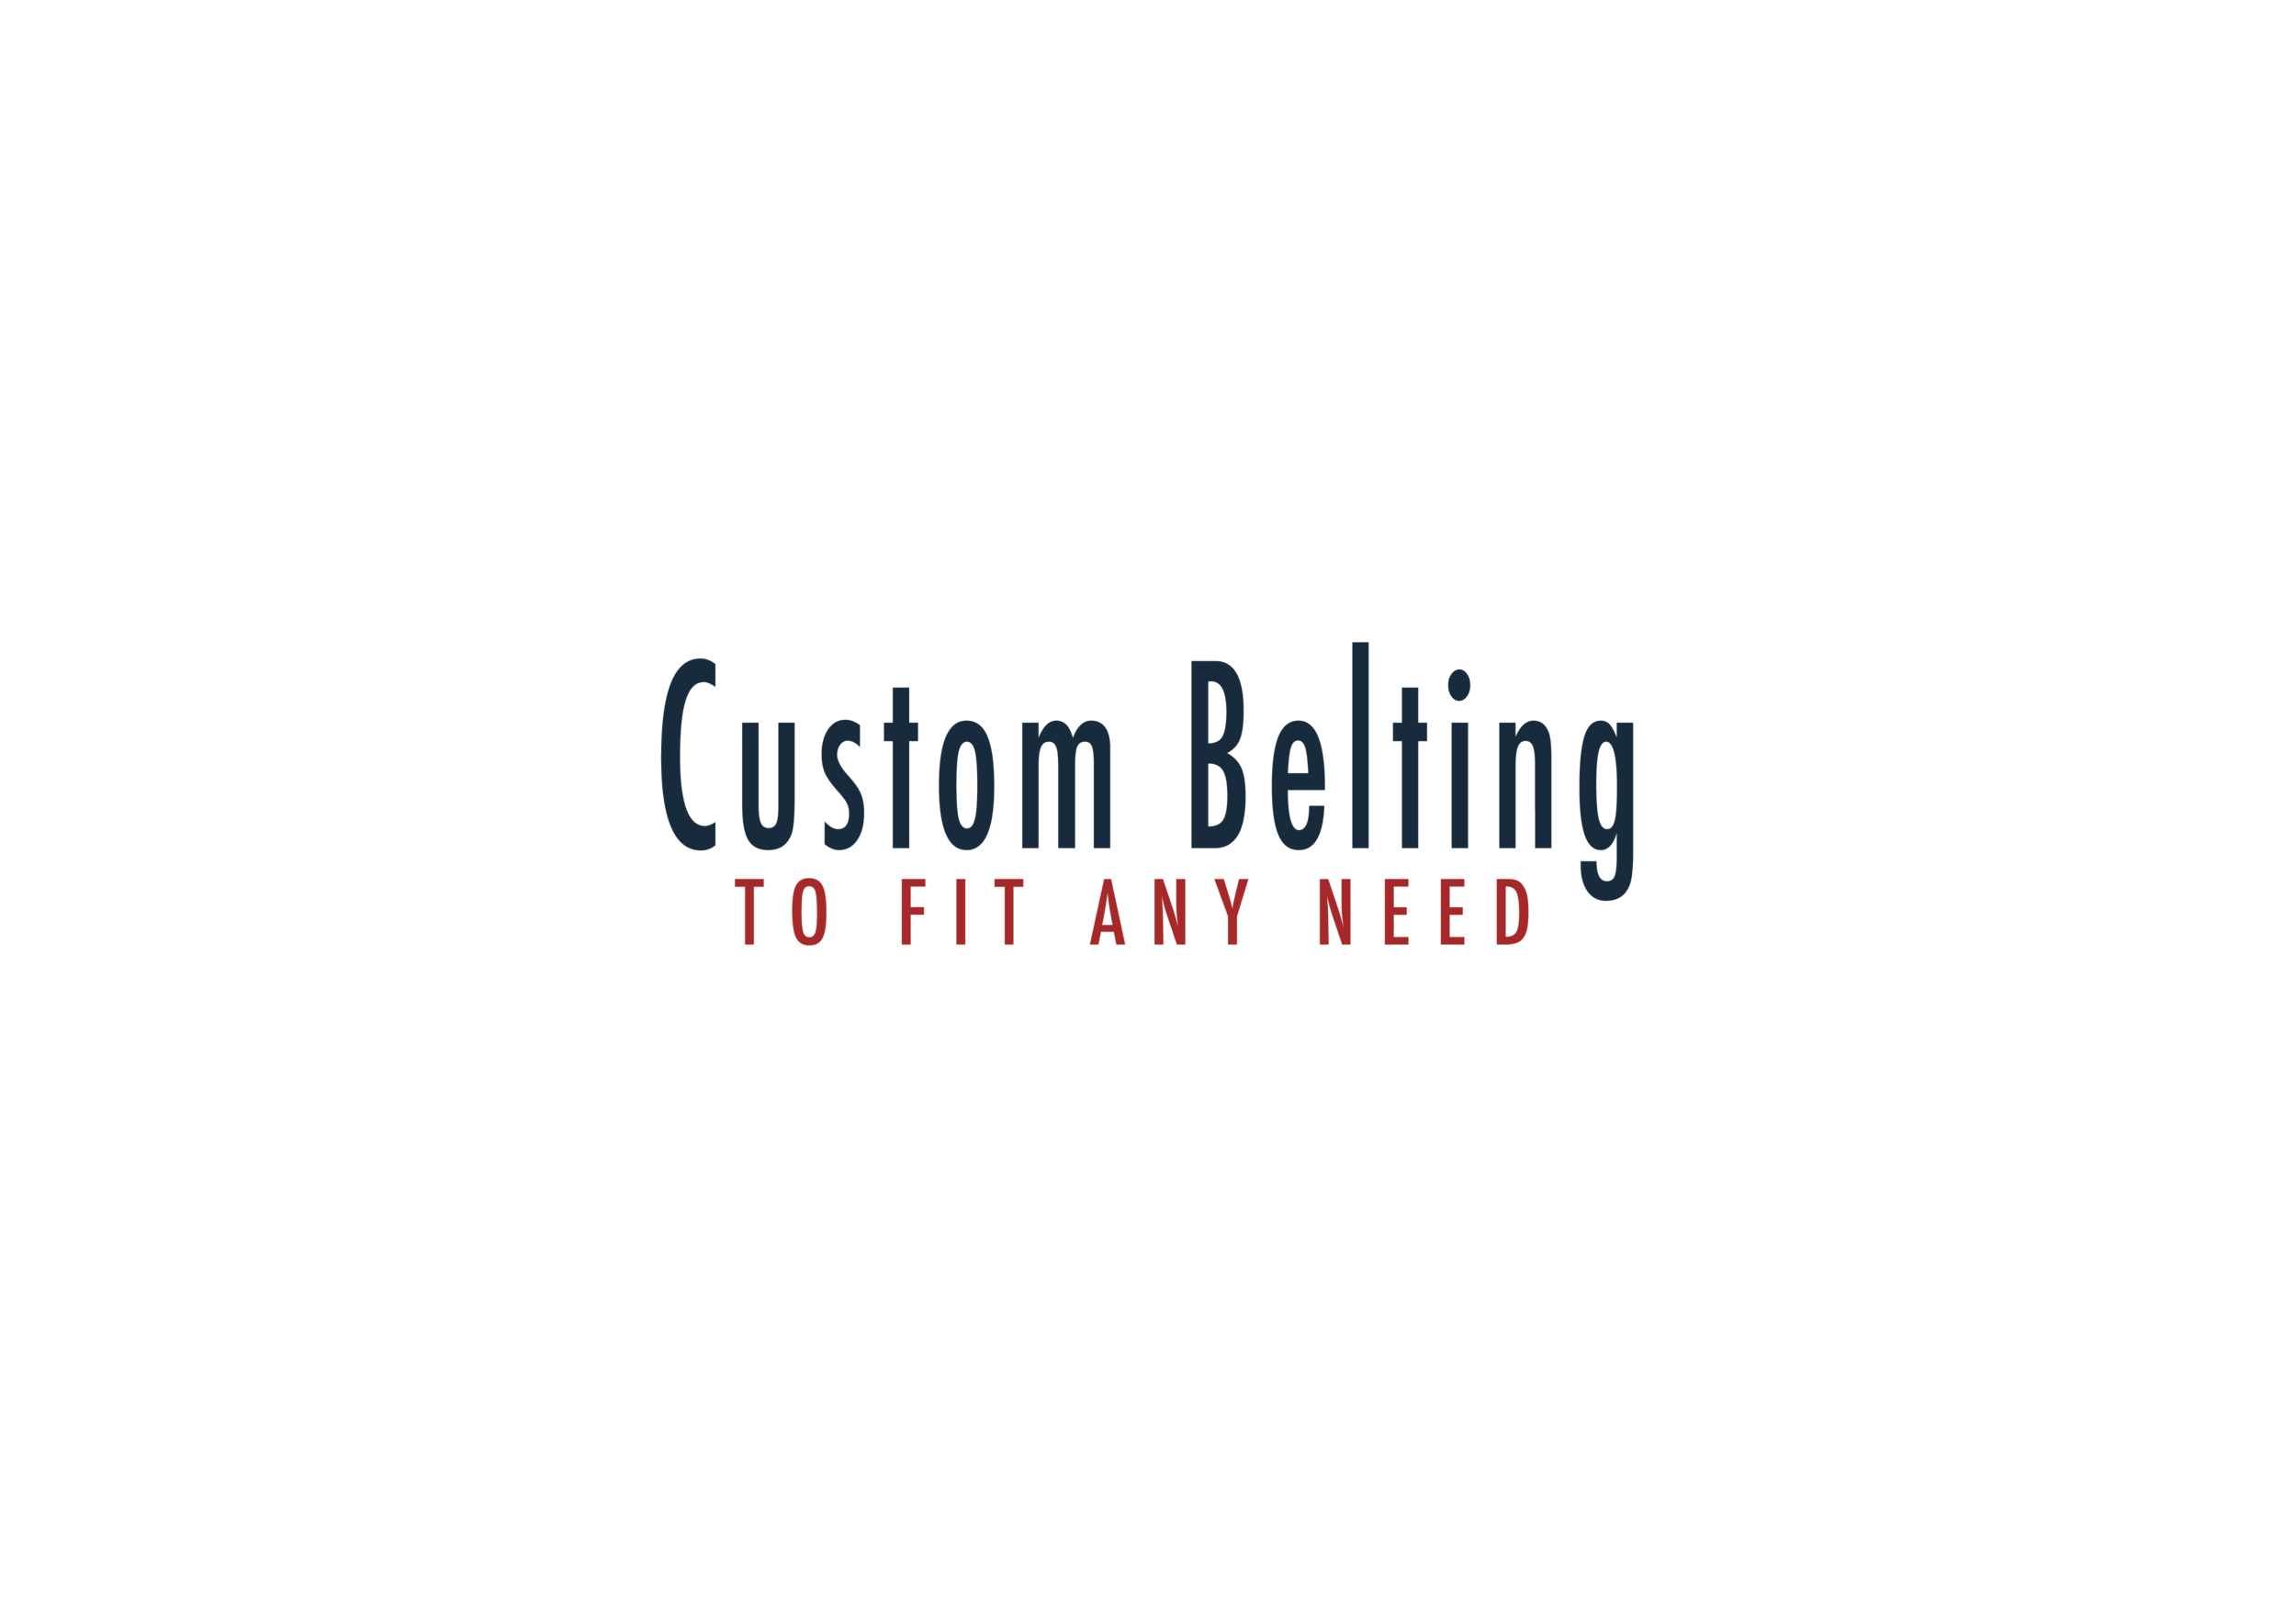 Conveyor Belts - We sell a wide variety of conveyor belts for a wide range of applications.Belting: Most all belts can be made custom to your needs. We provide our customers with a variety of materials, widths, lengths, thickness, plys, MOR belts, and PVC just to name a few of our most common customer wants.Our services: Our team is specialized in providing you with your exact conveying needs.